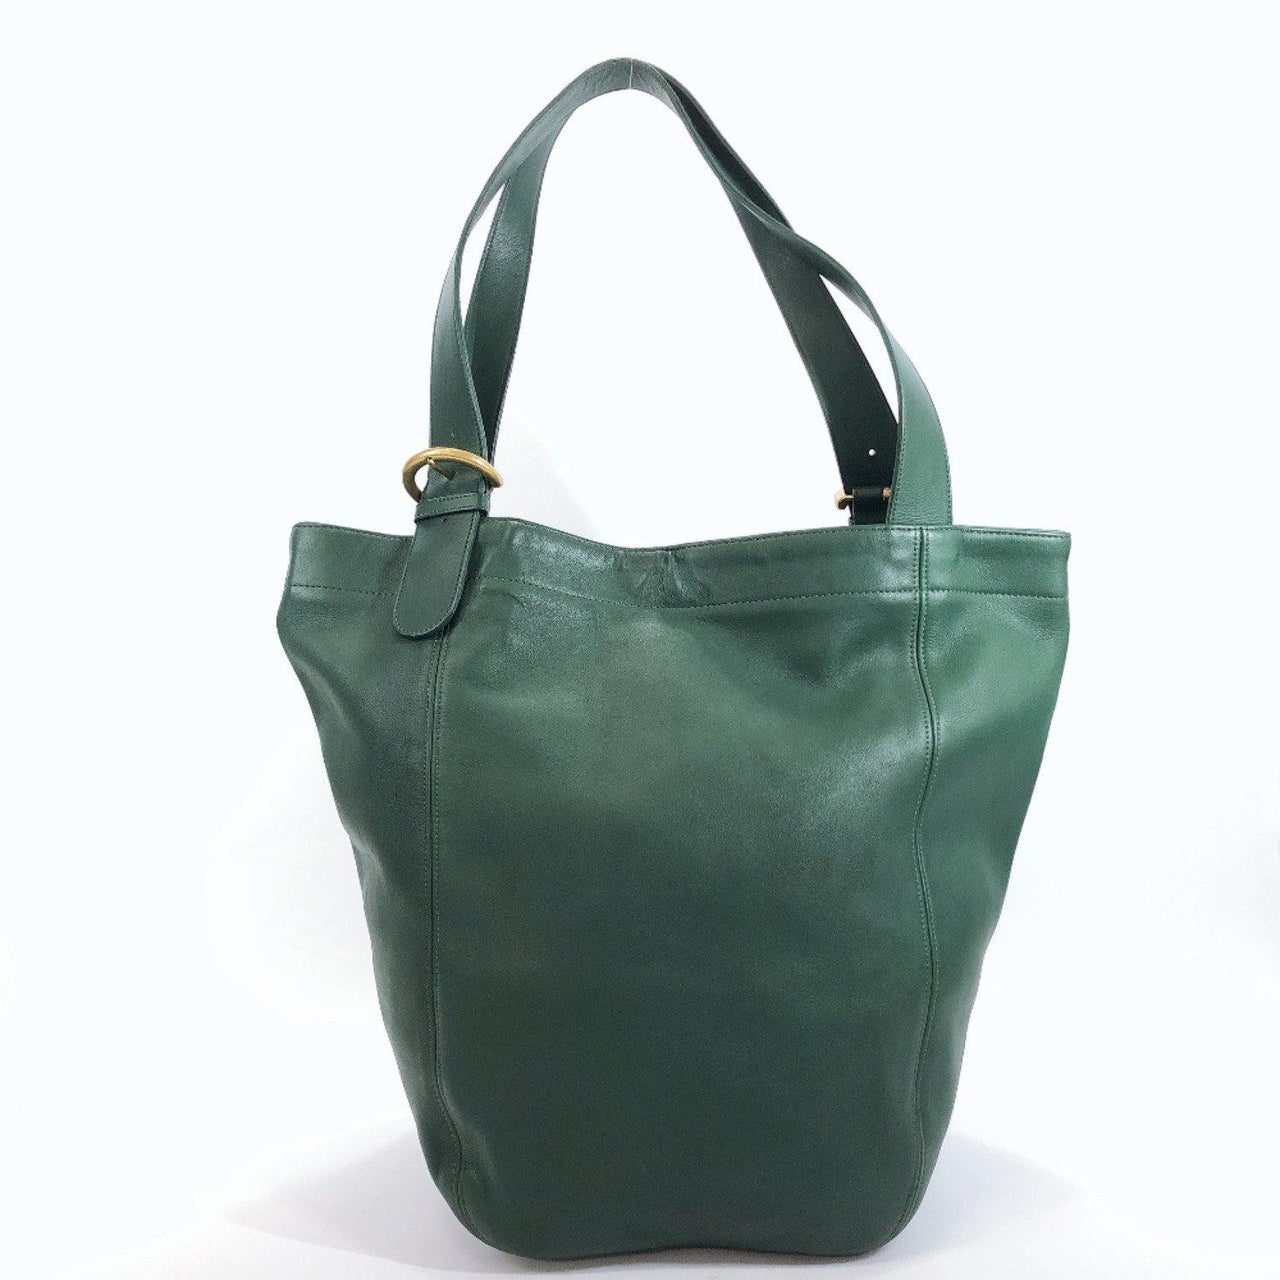 COACH Tote Bag 336 Old coach Grain leather green mens Used - JP-BRANDS.com